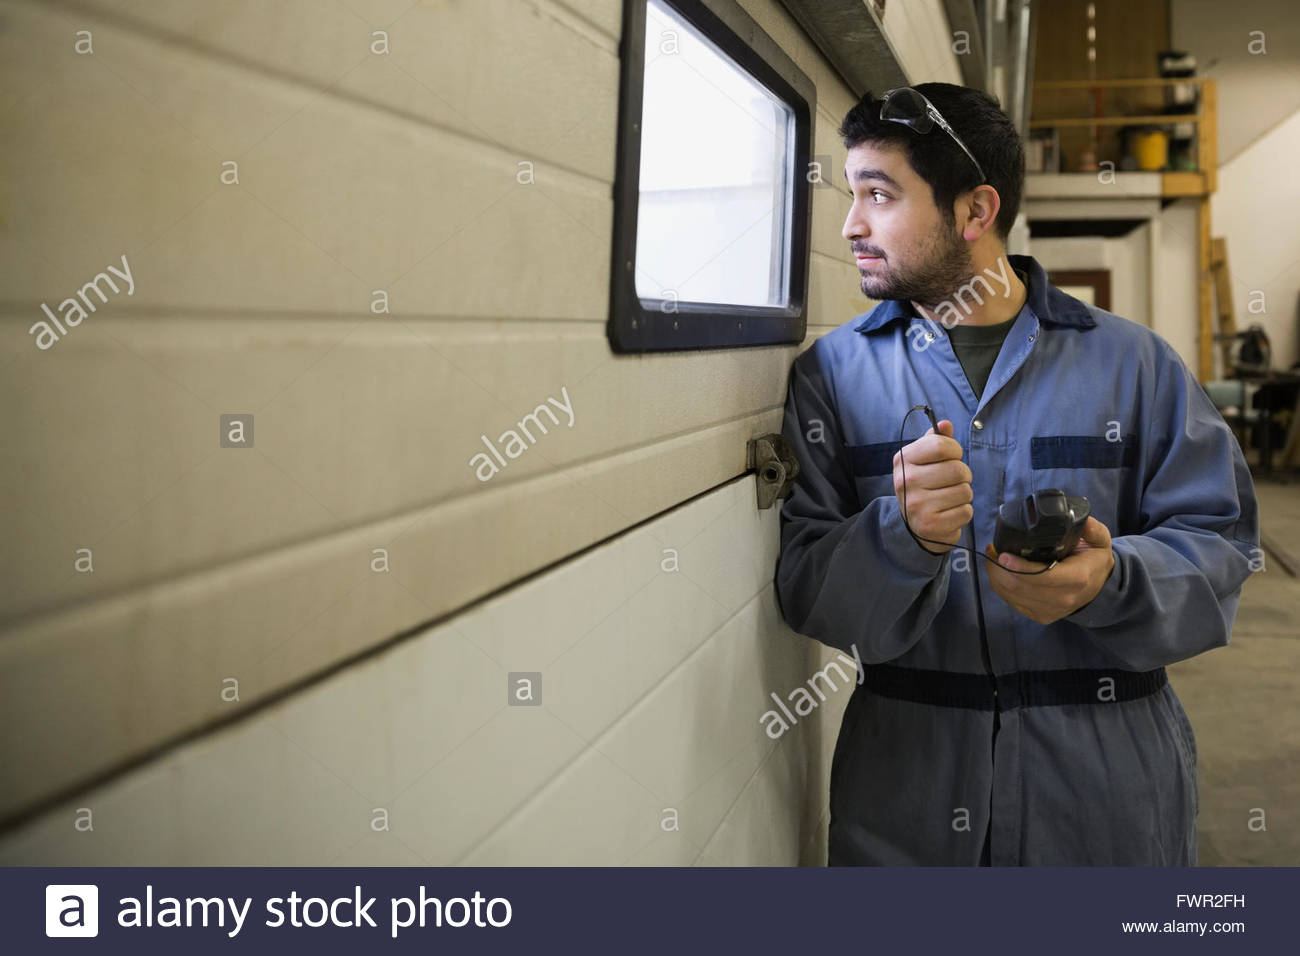 Worker with bar code reader in warehouse - Stock Image